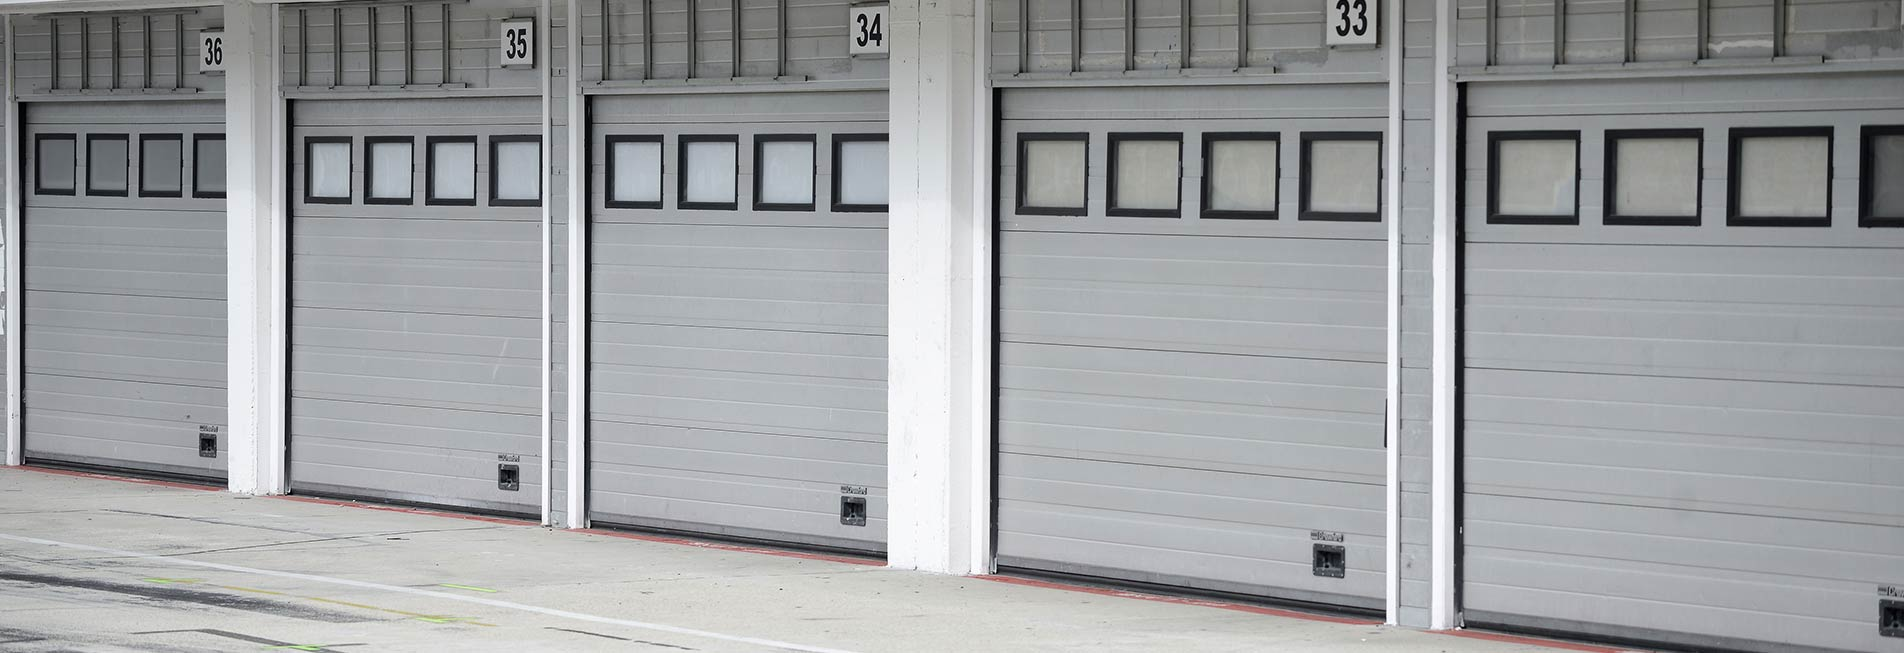 Trust Garage Door Service Westfield, NJ 908-533-1943